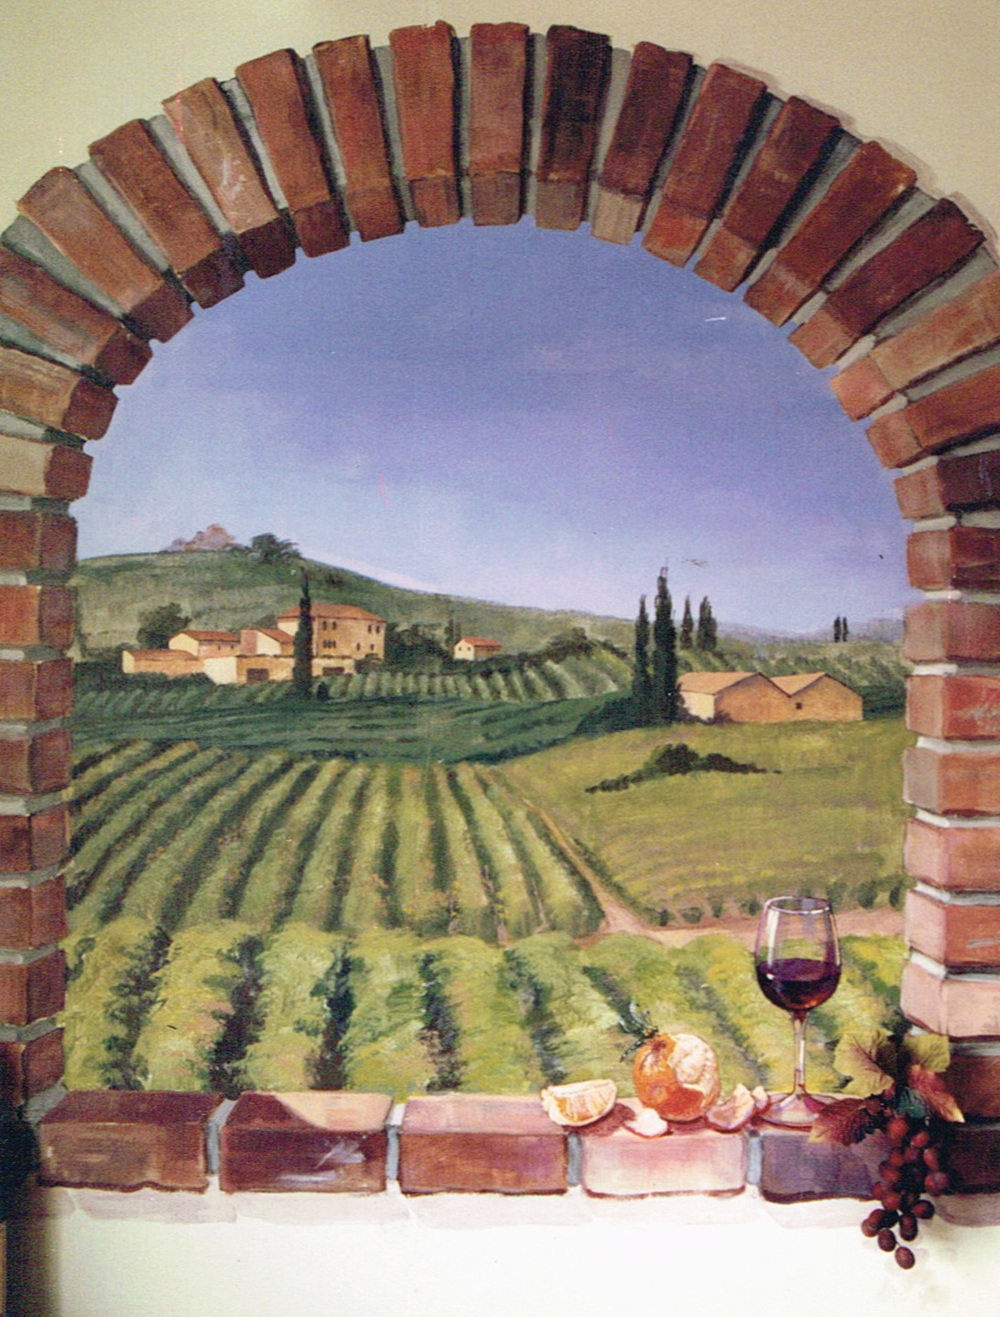 vineyard-brick.jpg